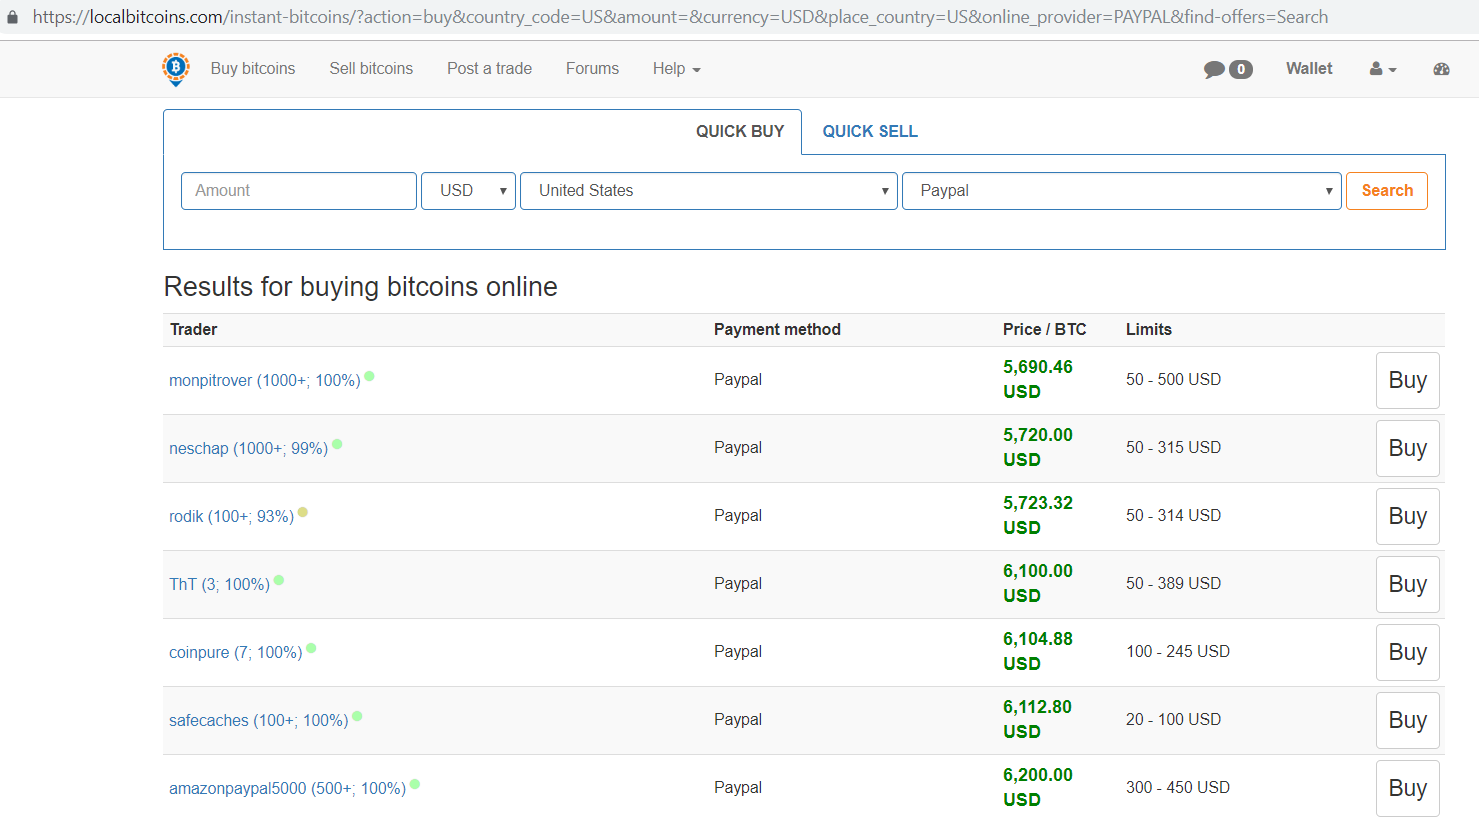 Localbitcoins.com results for buying bitcoins online page.